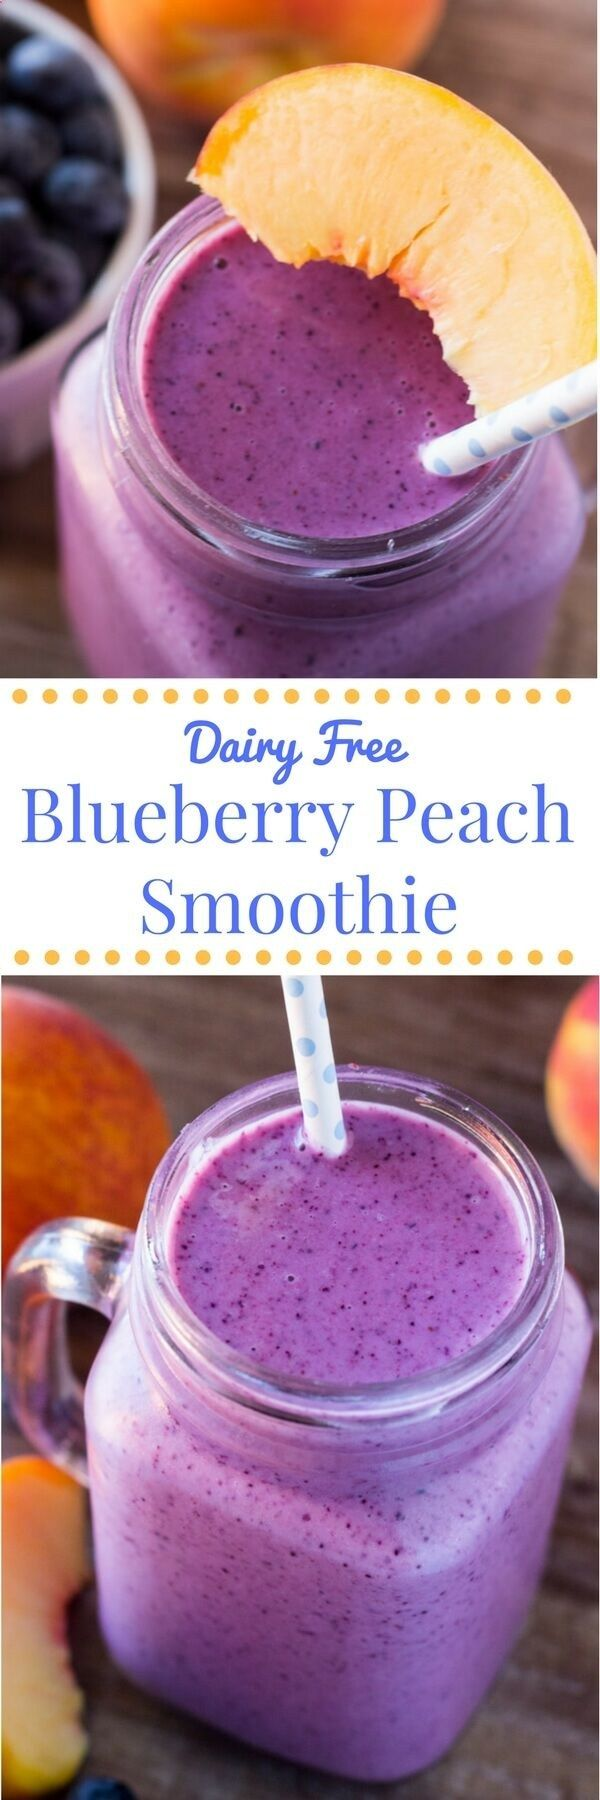 This blueberry peach smoothie with almond milk is dairy free, naturally sweetened  so delicious from the fresh summer fruit. 4 ingredients  perfectly refreshing!